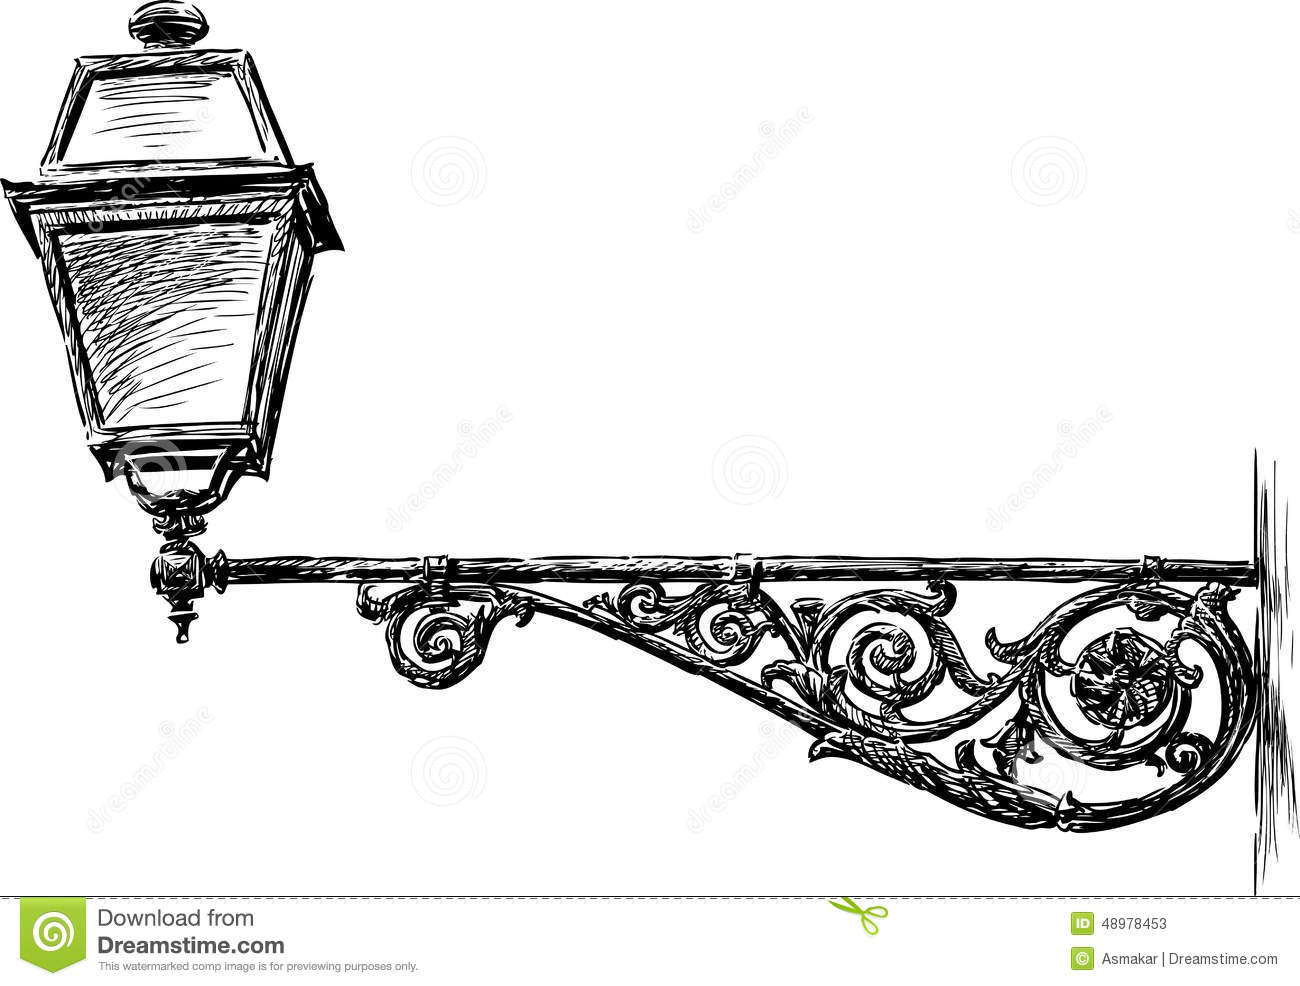 Old Street Light Stock Vector Illustration Of Ornate